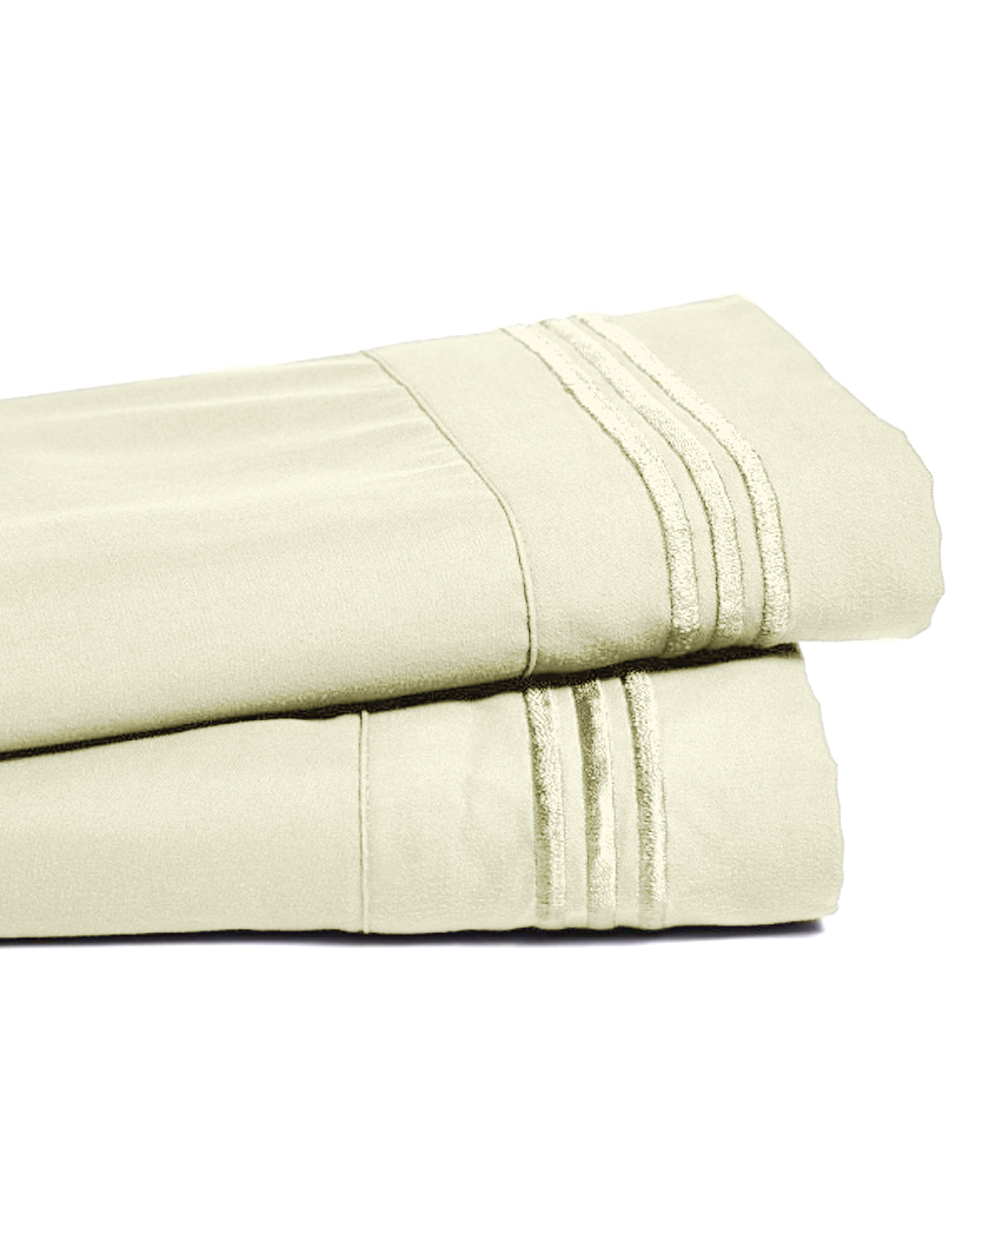 Deep Pocket Bamboo Bed Sheet - Luxury 2200 Embroidered Wrinkle, Fade and Stain Resistant Sheets - Cream Full Size